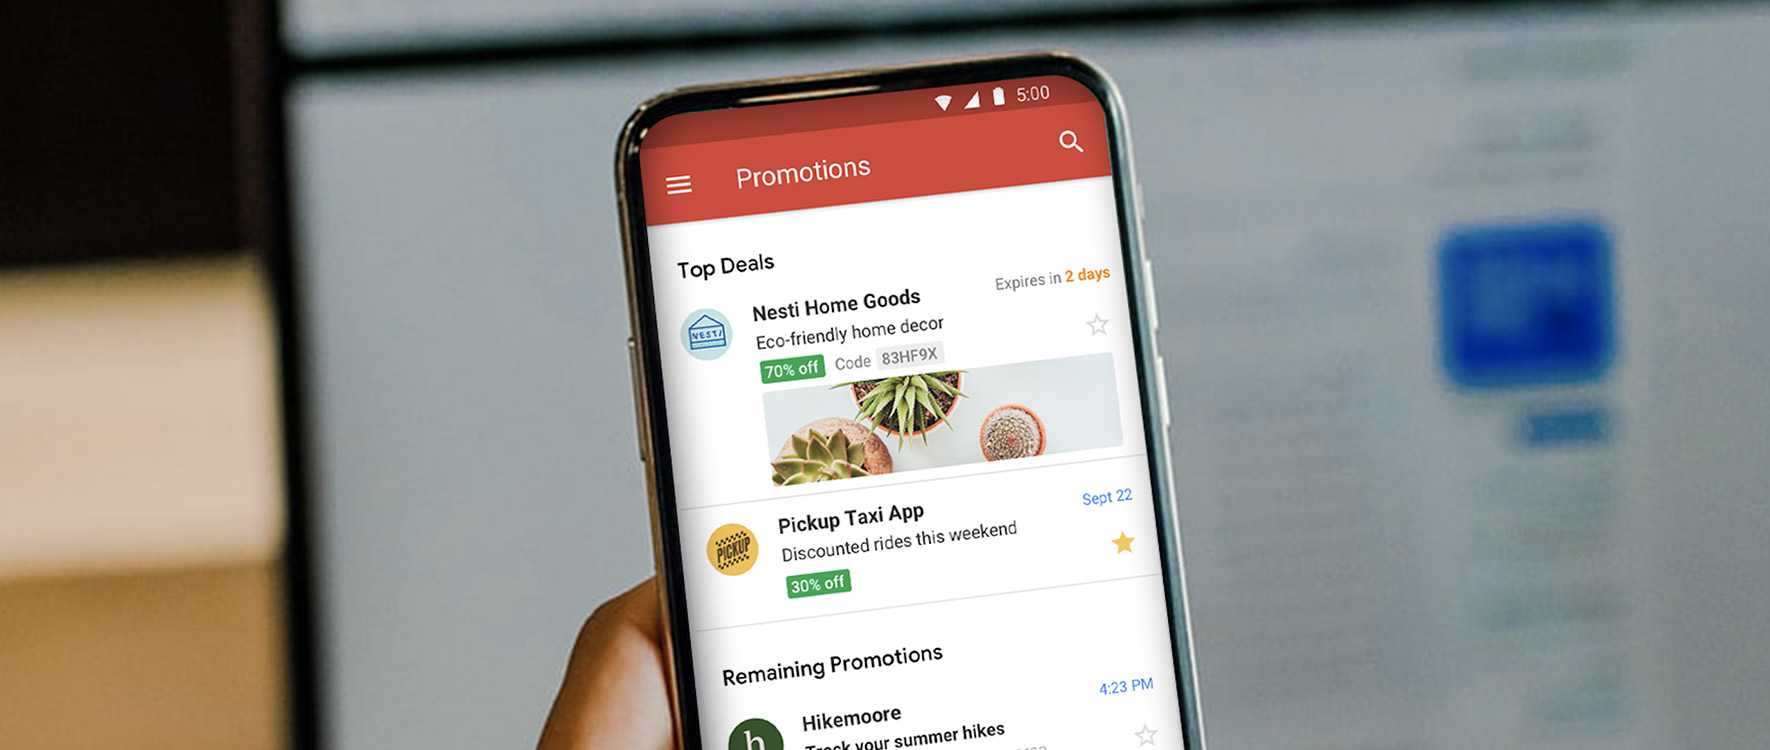 promotions in gmail mail box